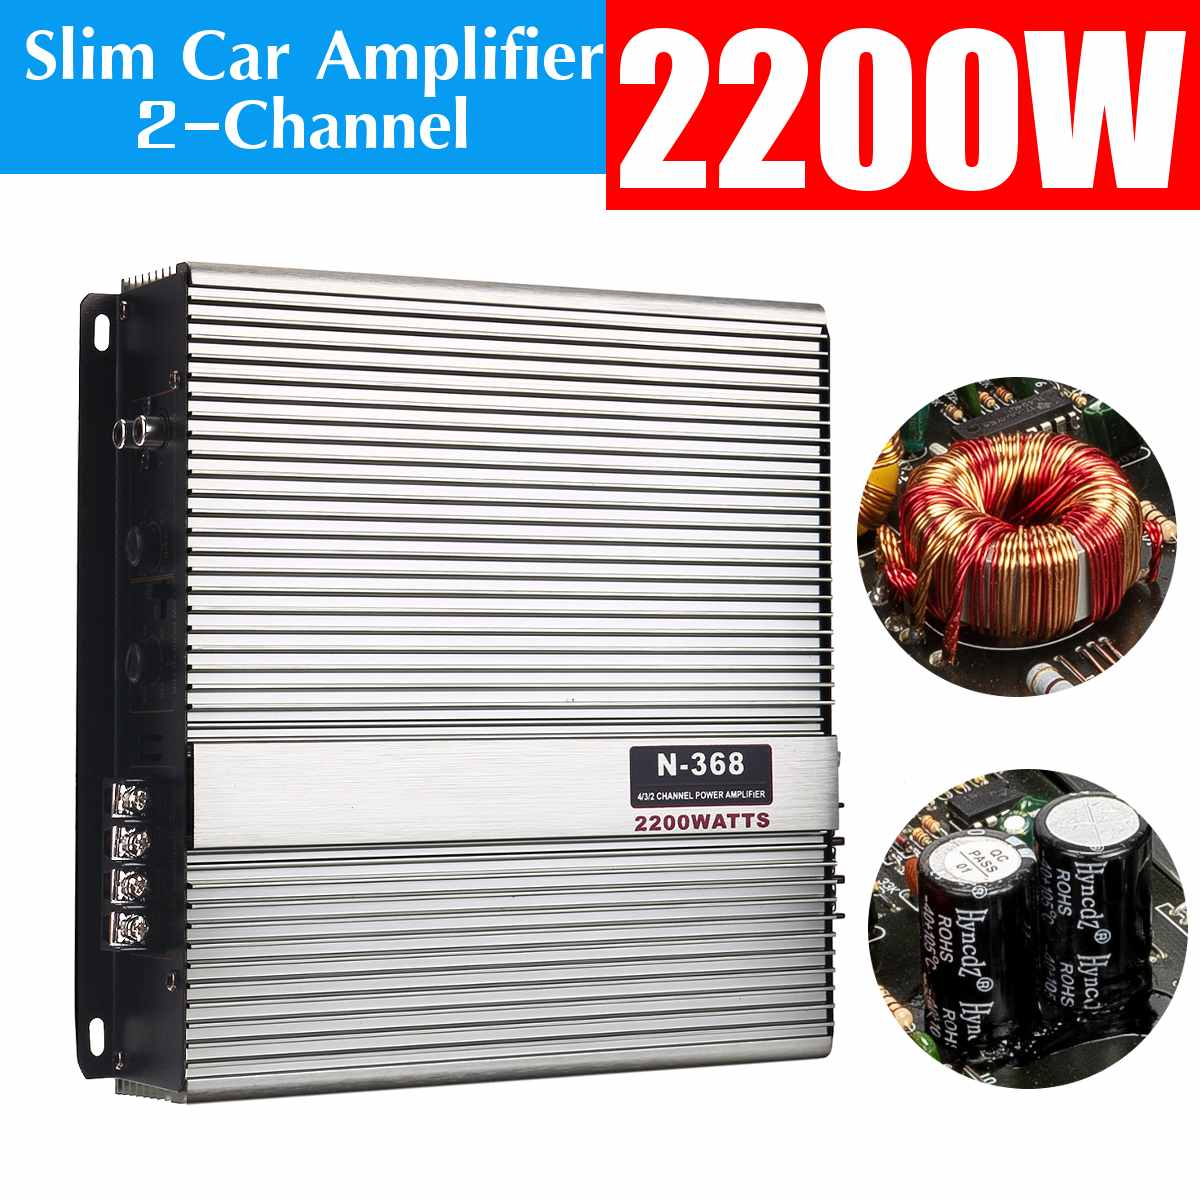 2200W 12V Car Amplifier Audio Stereo Bass Speaker Car Audio Amplifiers Subwoofer Car Audio Amplifiers With Wire Kit